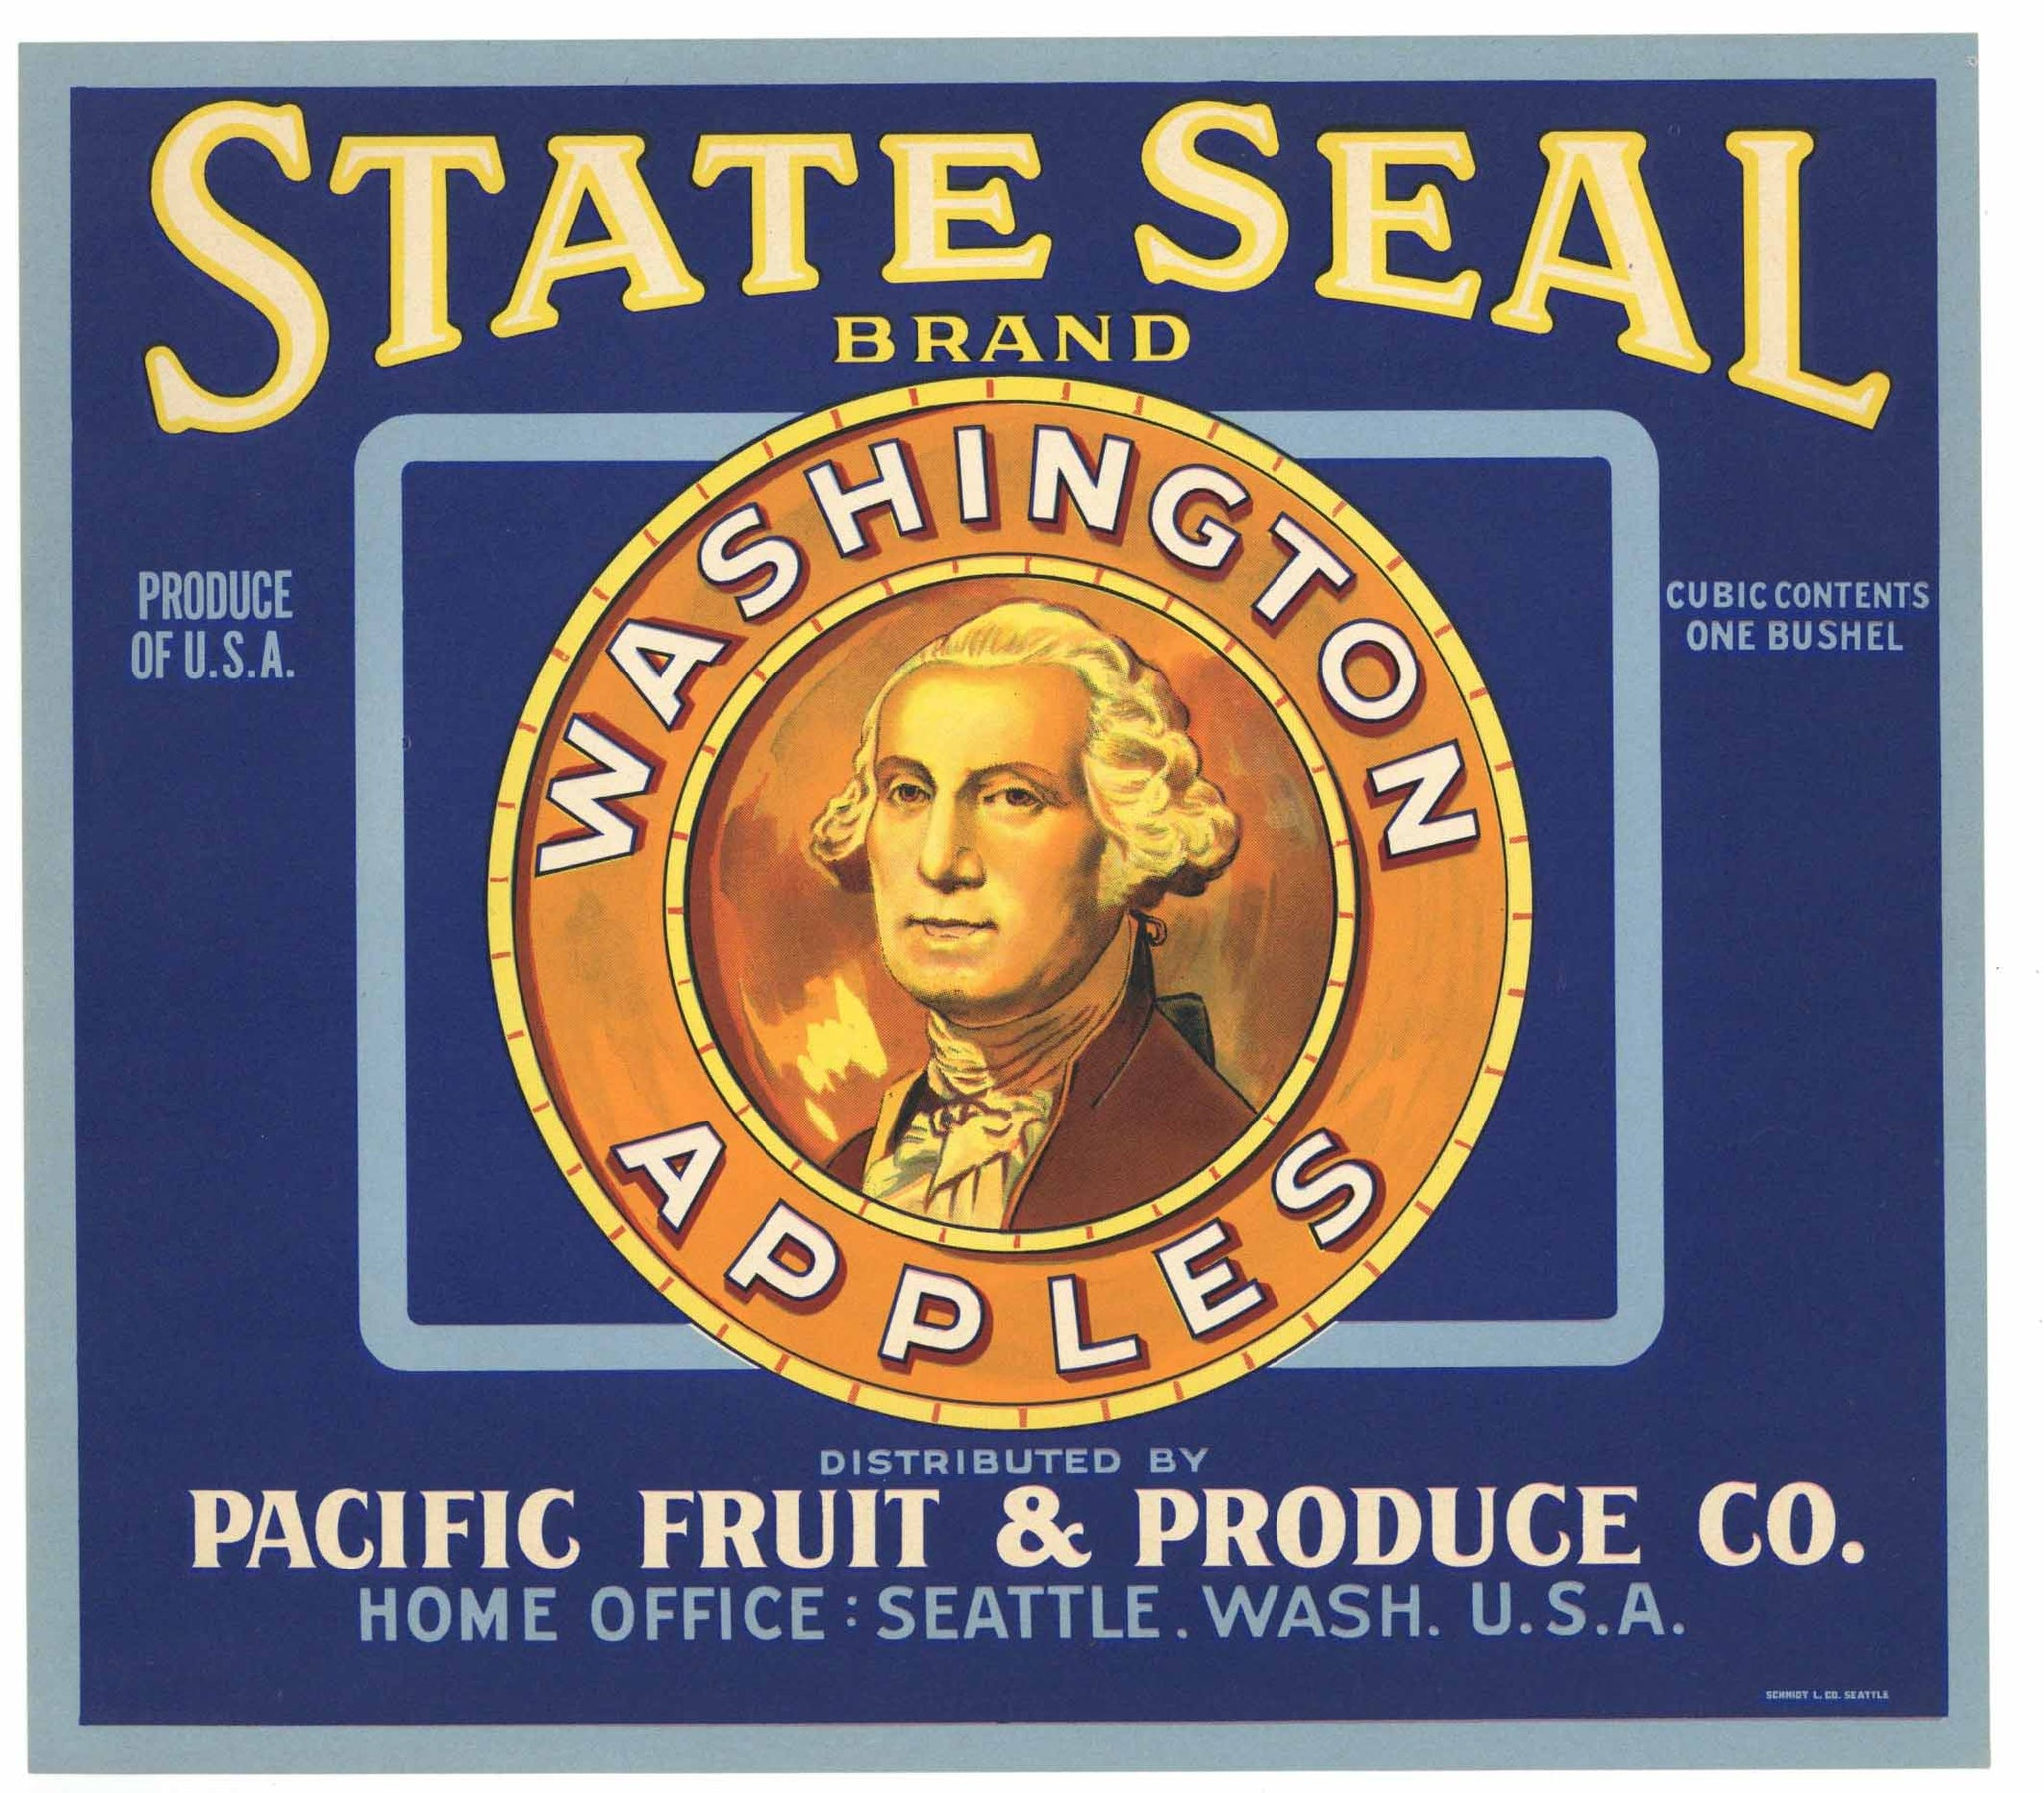 State Seal Brand Vintage Pacific Fruit & Produce Apple Crate Label